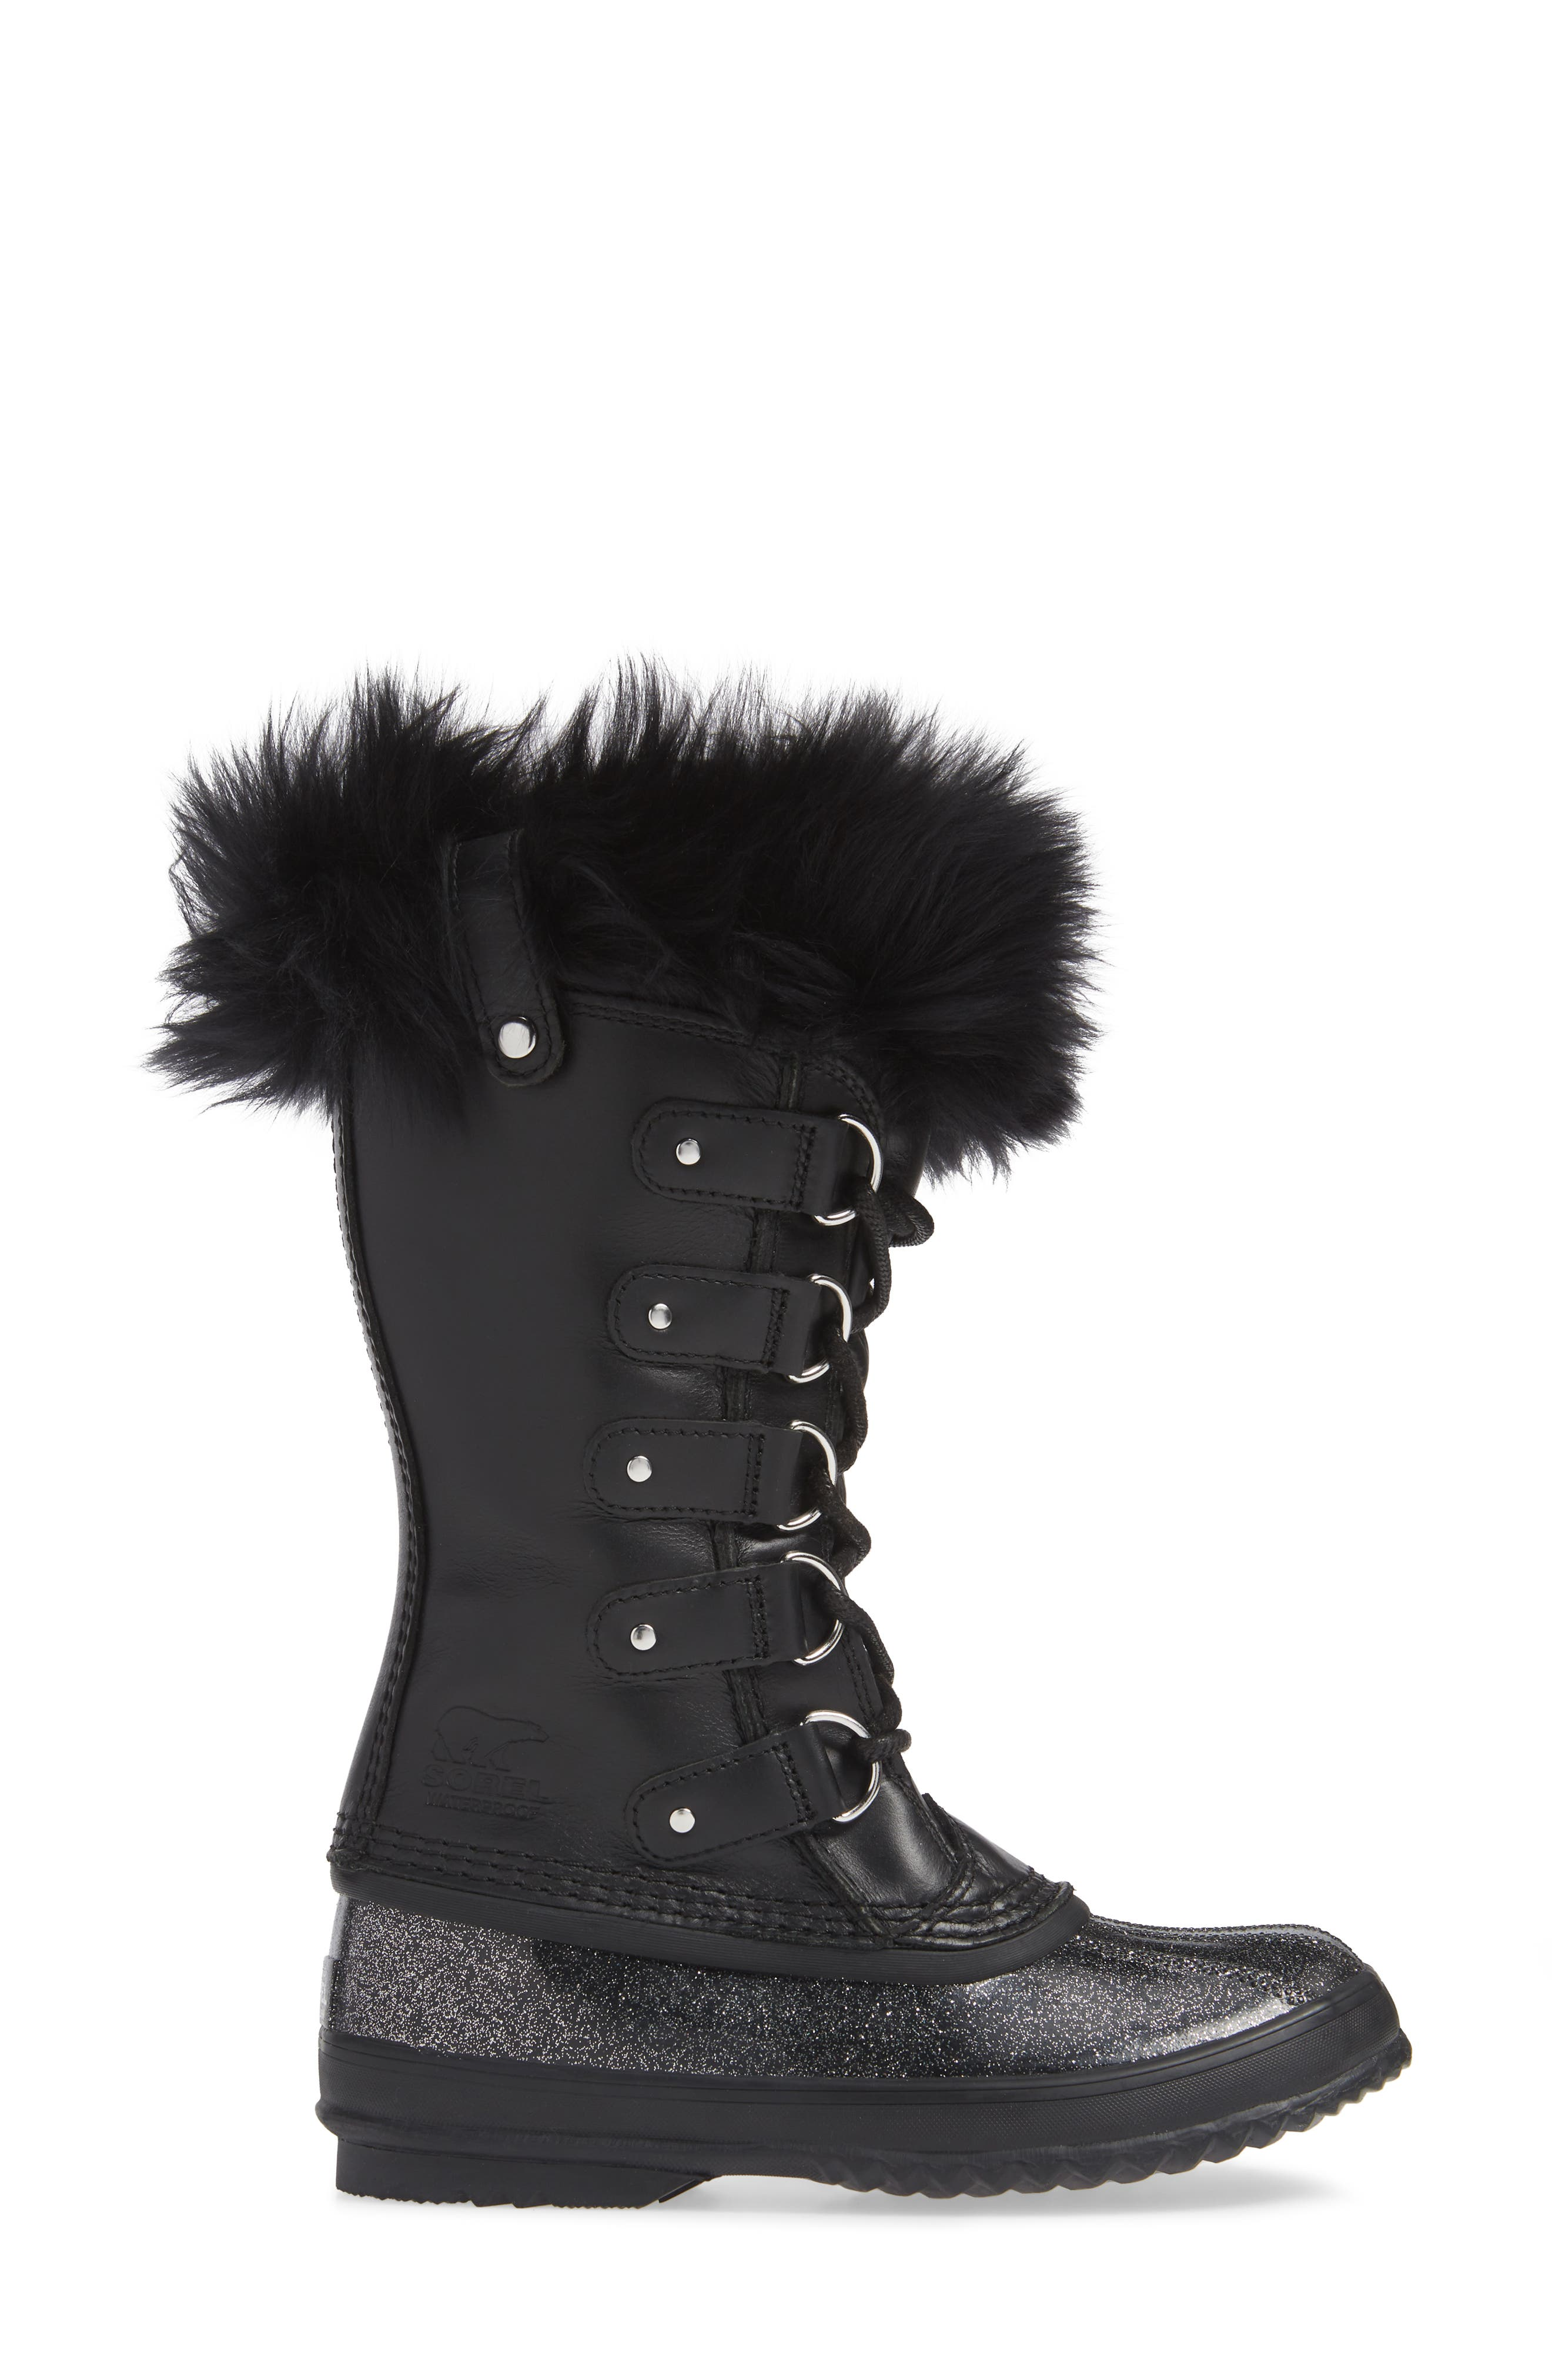 Joan of Arctic<sup>™</sup> Lux Waterproof Winter Boot with Genuine Shearling,                             Alternate thumbnail 3, color,                             010